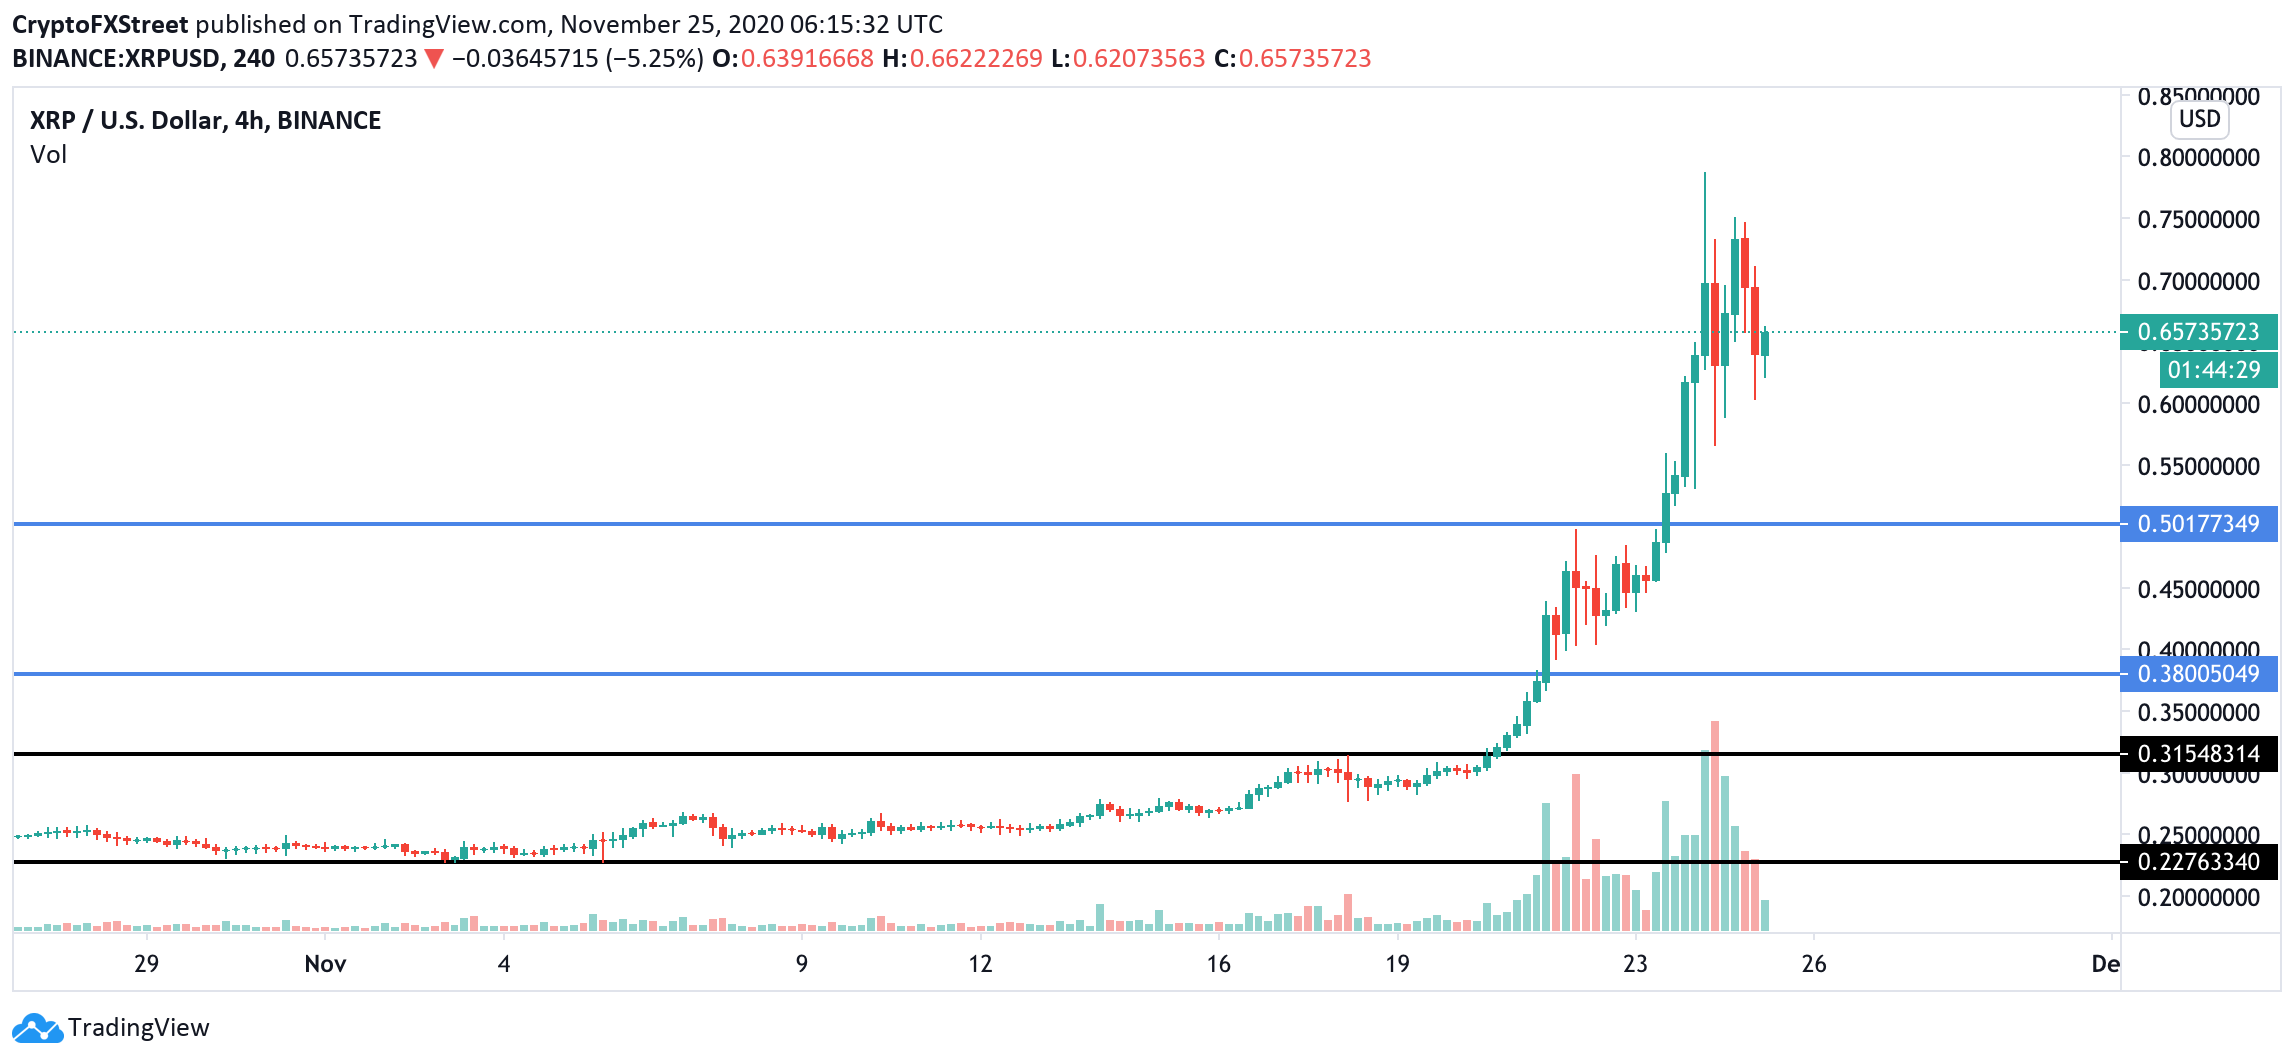 XRP/USD, 4-hour chart